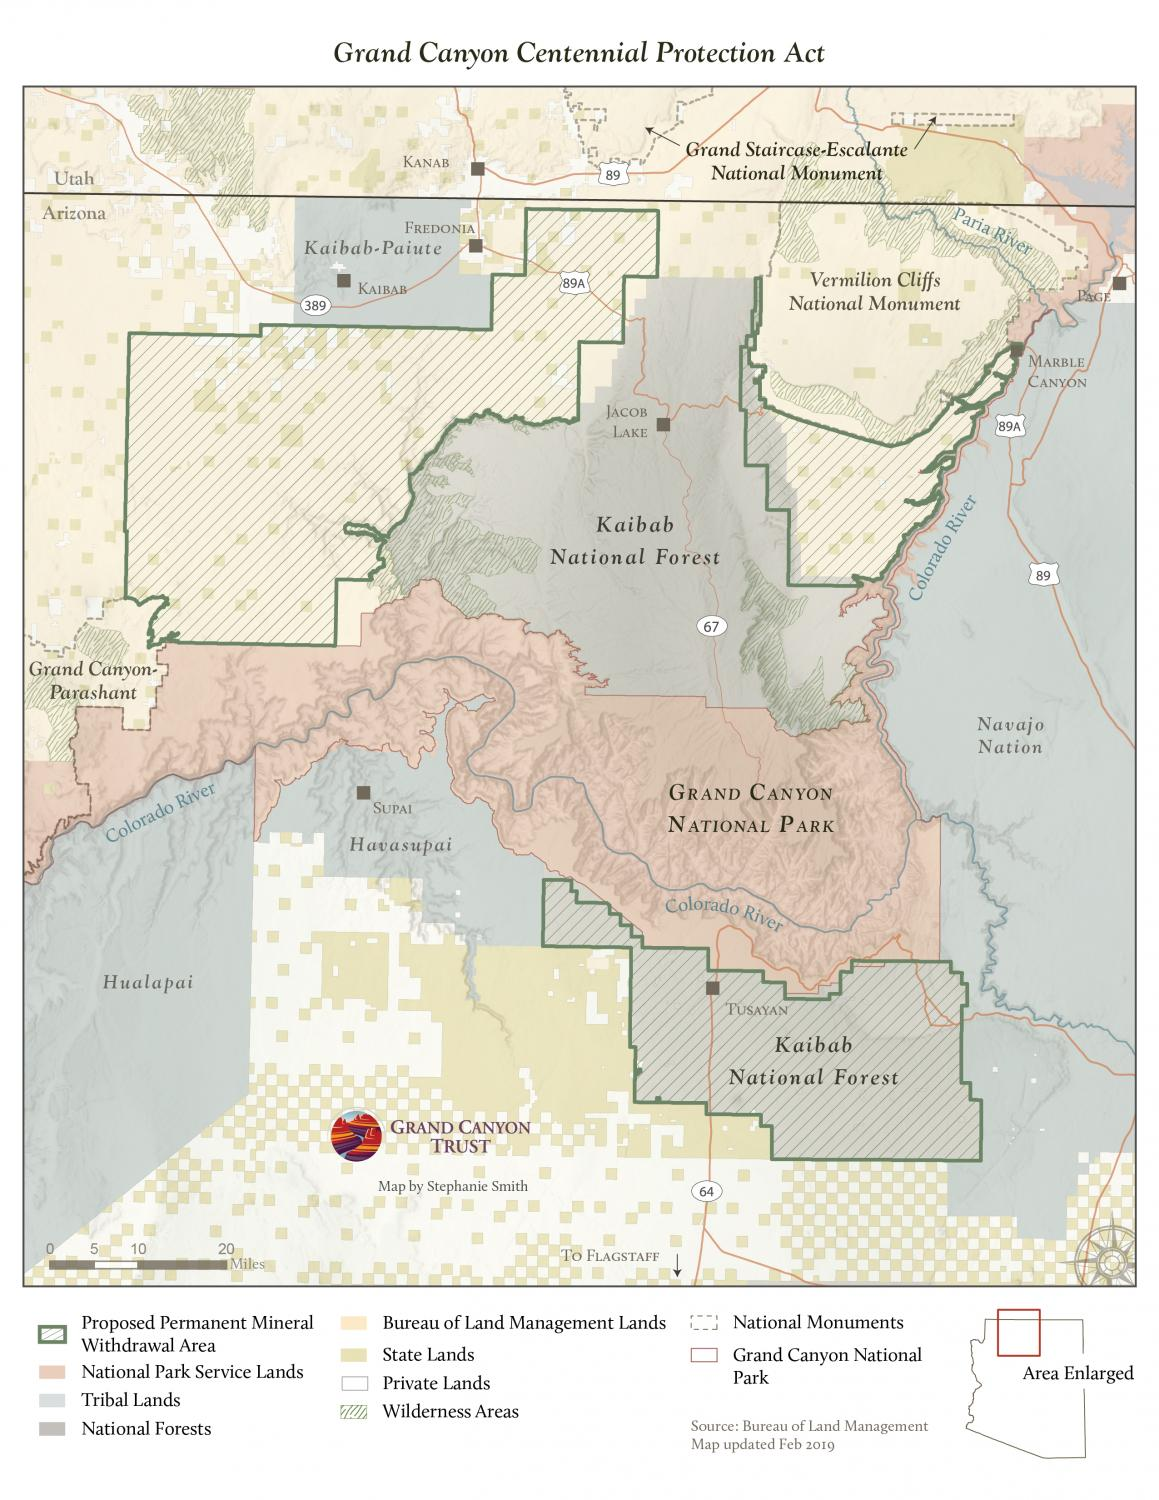 Grand Canyon Centennial Protection Act Land Ownership Map